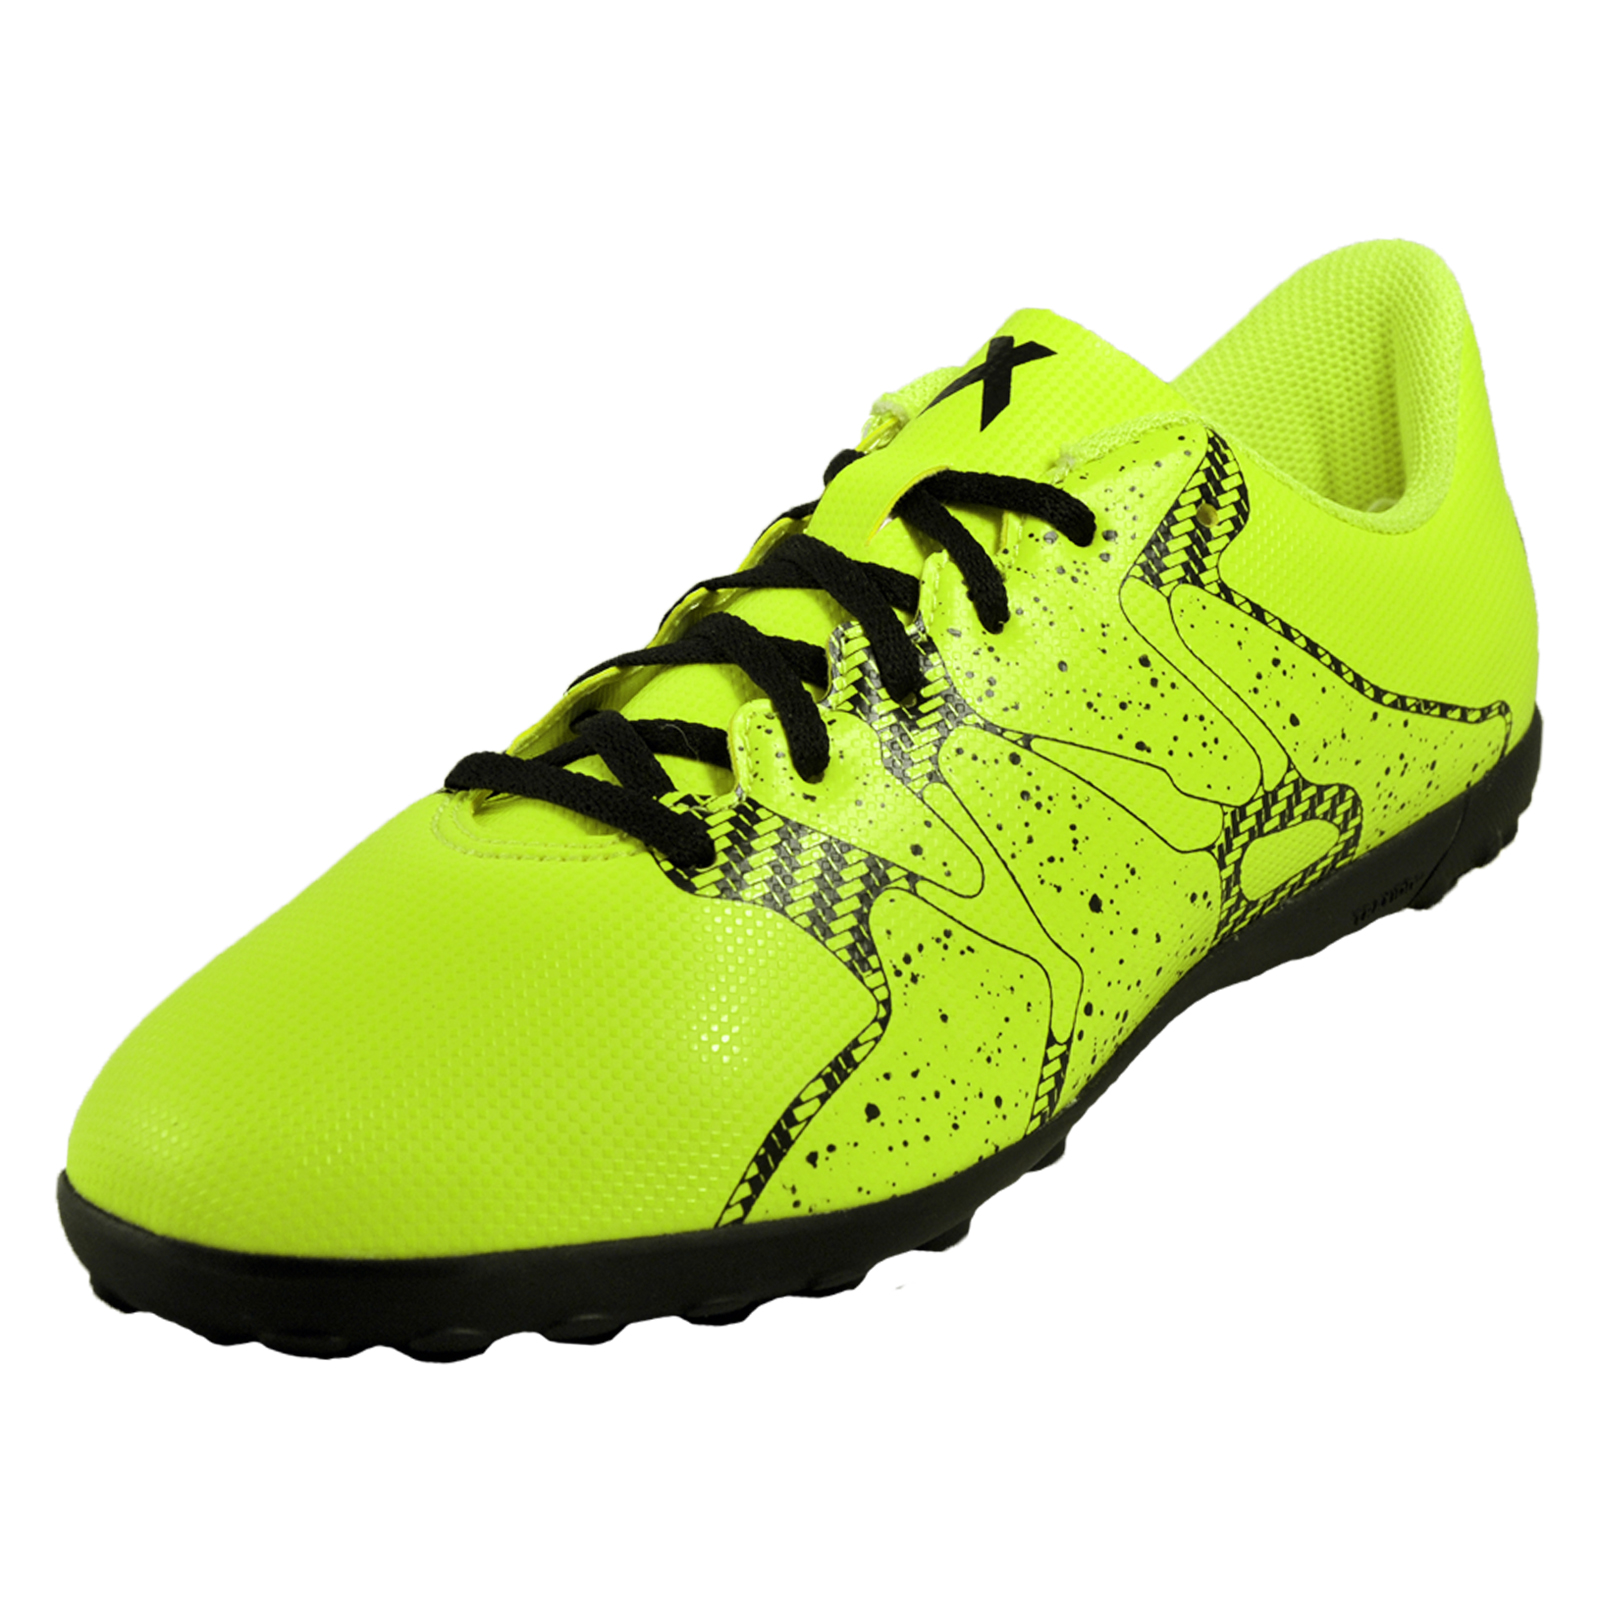 uk availability a1236 c3b11 Details about Adidas X15.4 TF Turf Junior Kids Boys Football Astro Trainers  Yellow